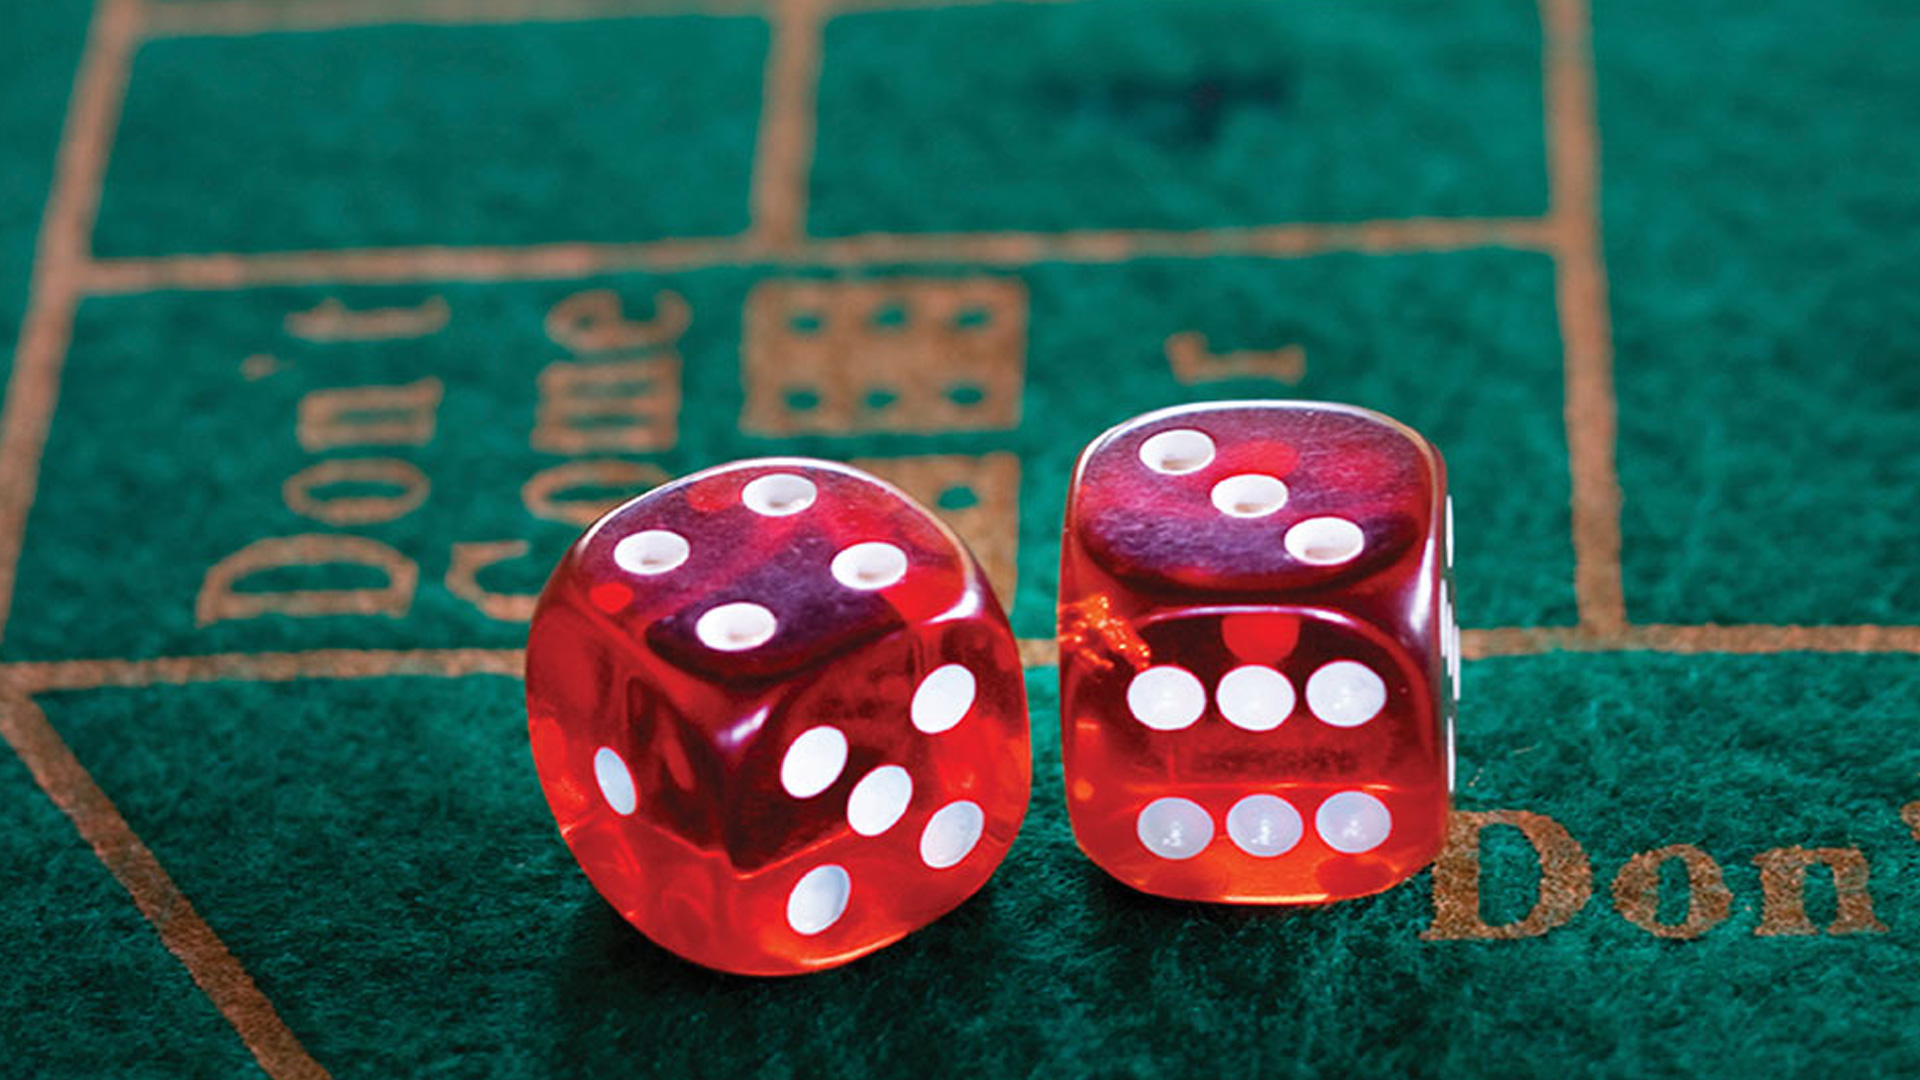 Let's Move On To The Very Easy Craps Rule Of Simplified Craps